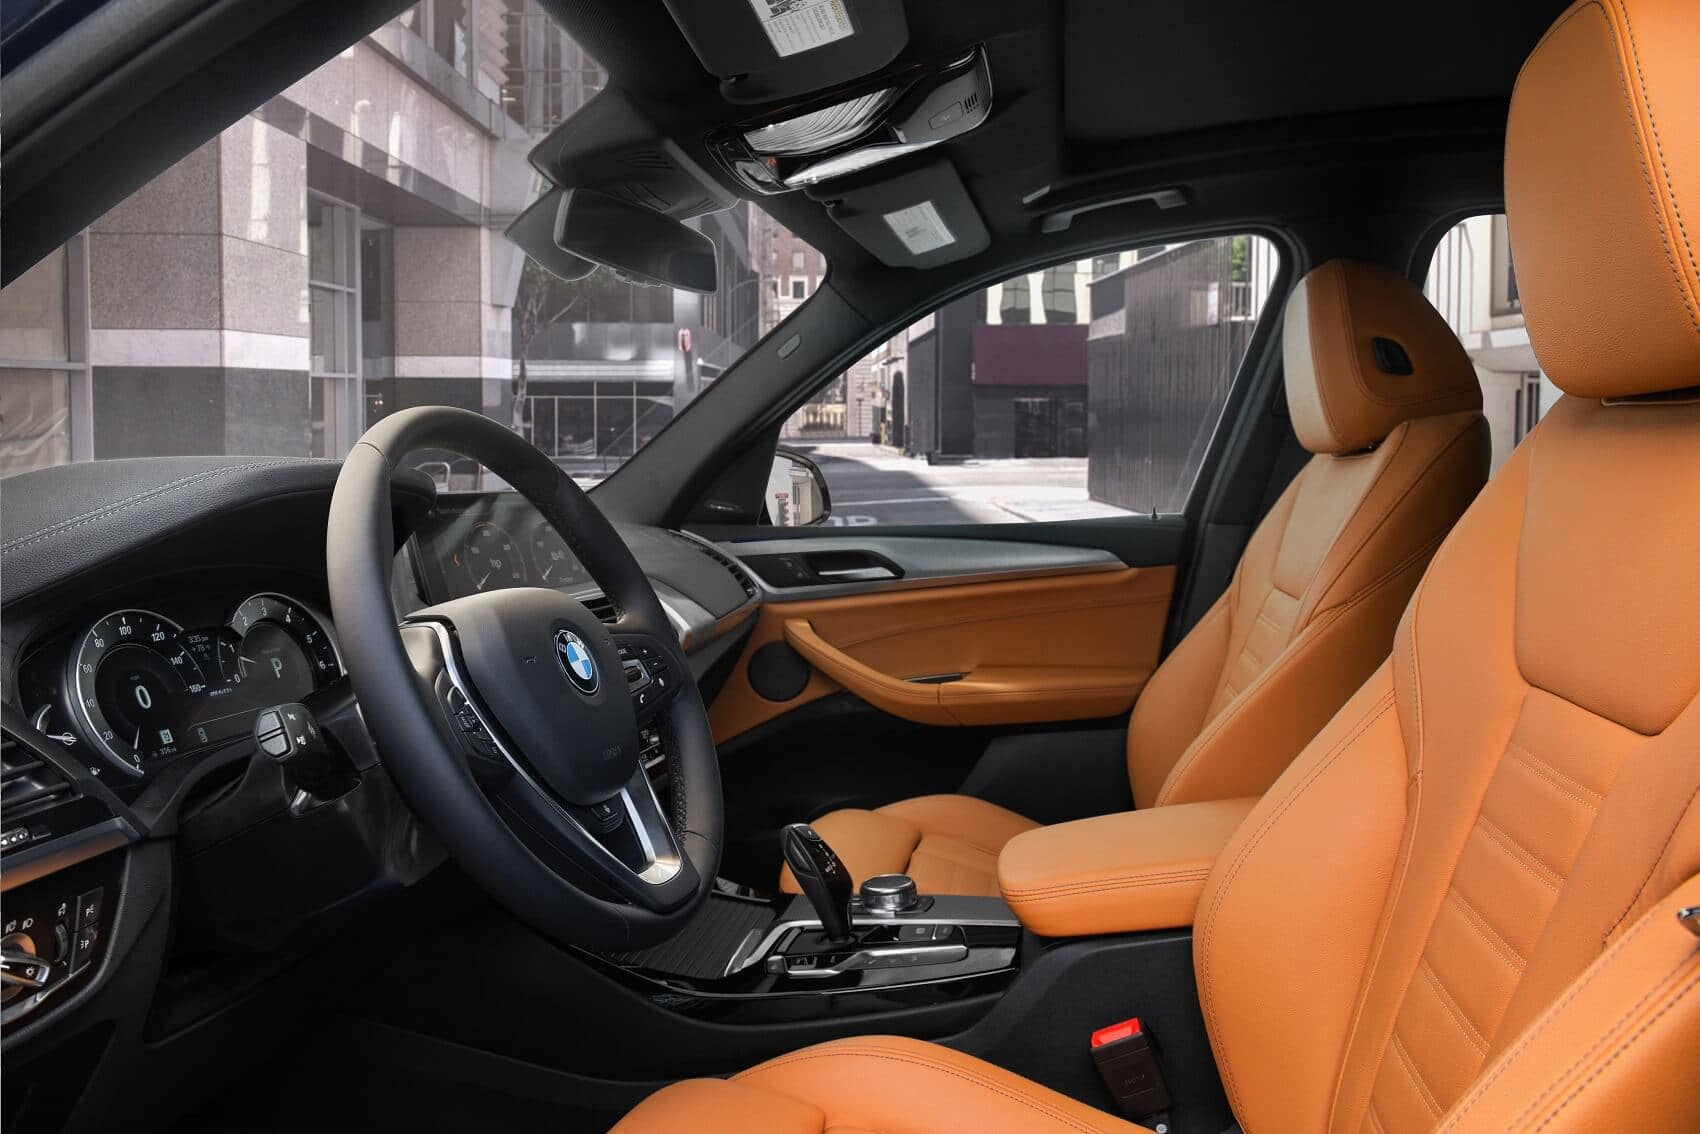 Interior Comfort and Features